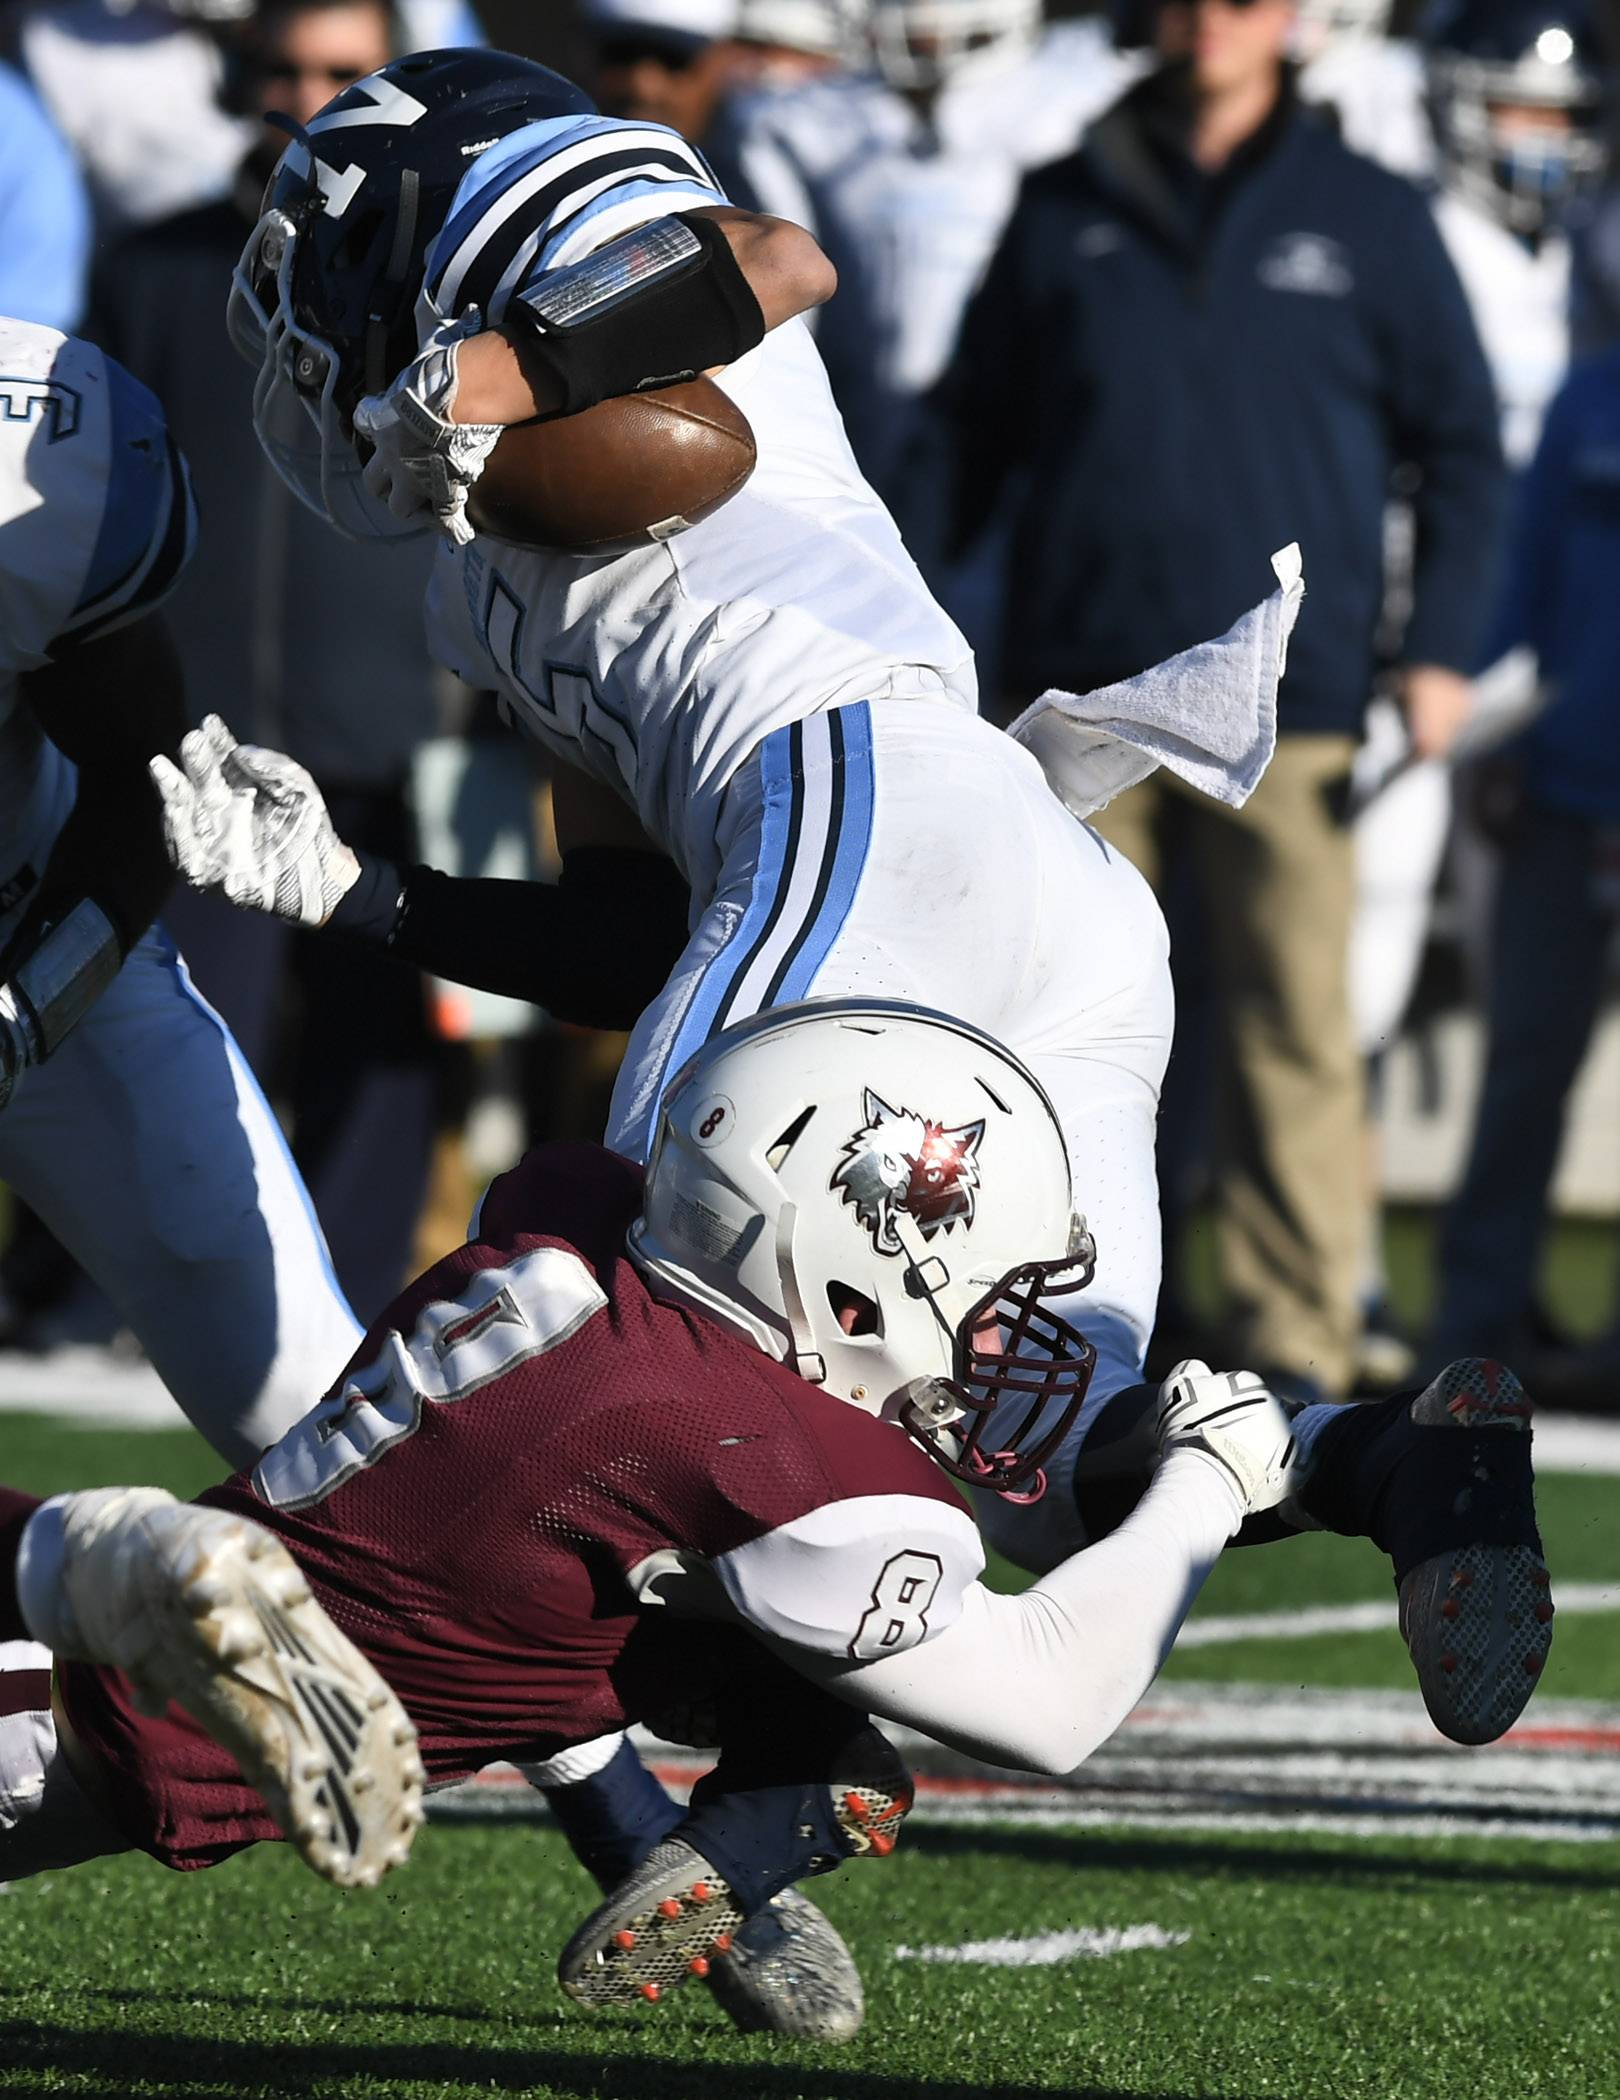 Prairie Ridge's Kyle Koelblinger tackles Nazareth's Alex Carrillo during the Class 6A championship game at Huskie Stadium in DeKalb Saturday.